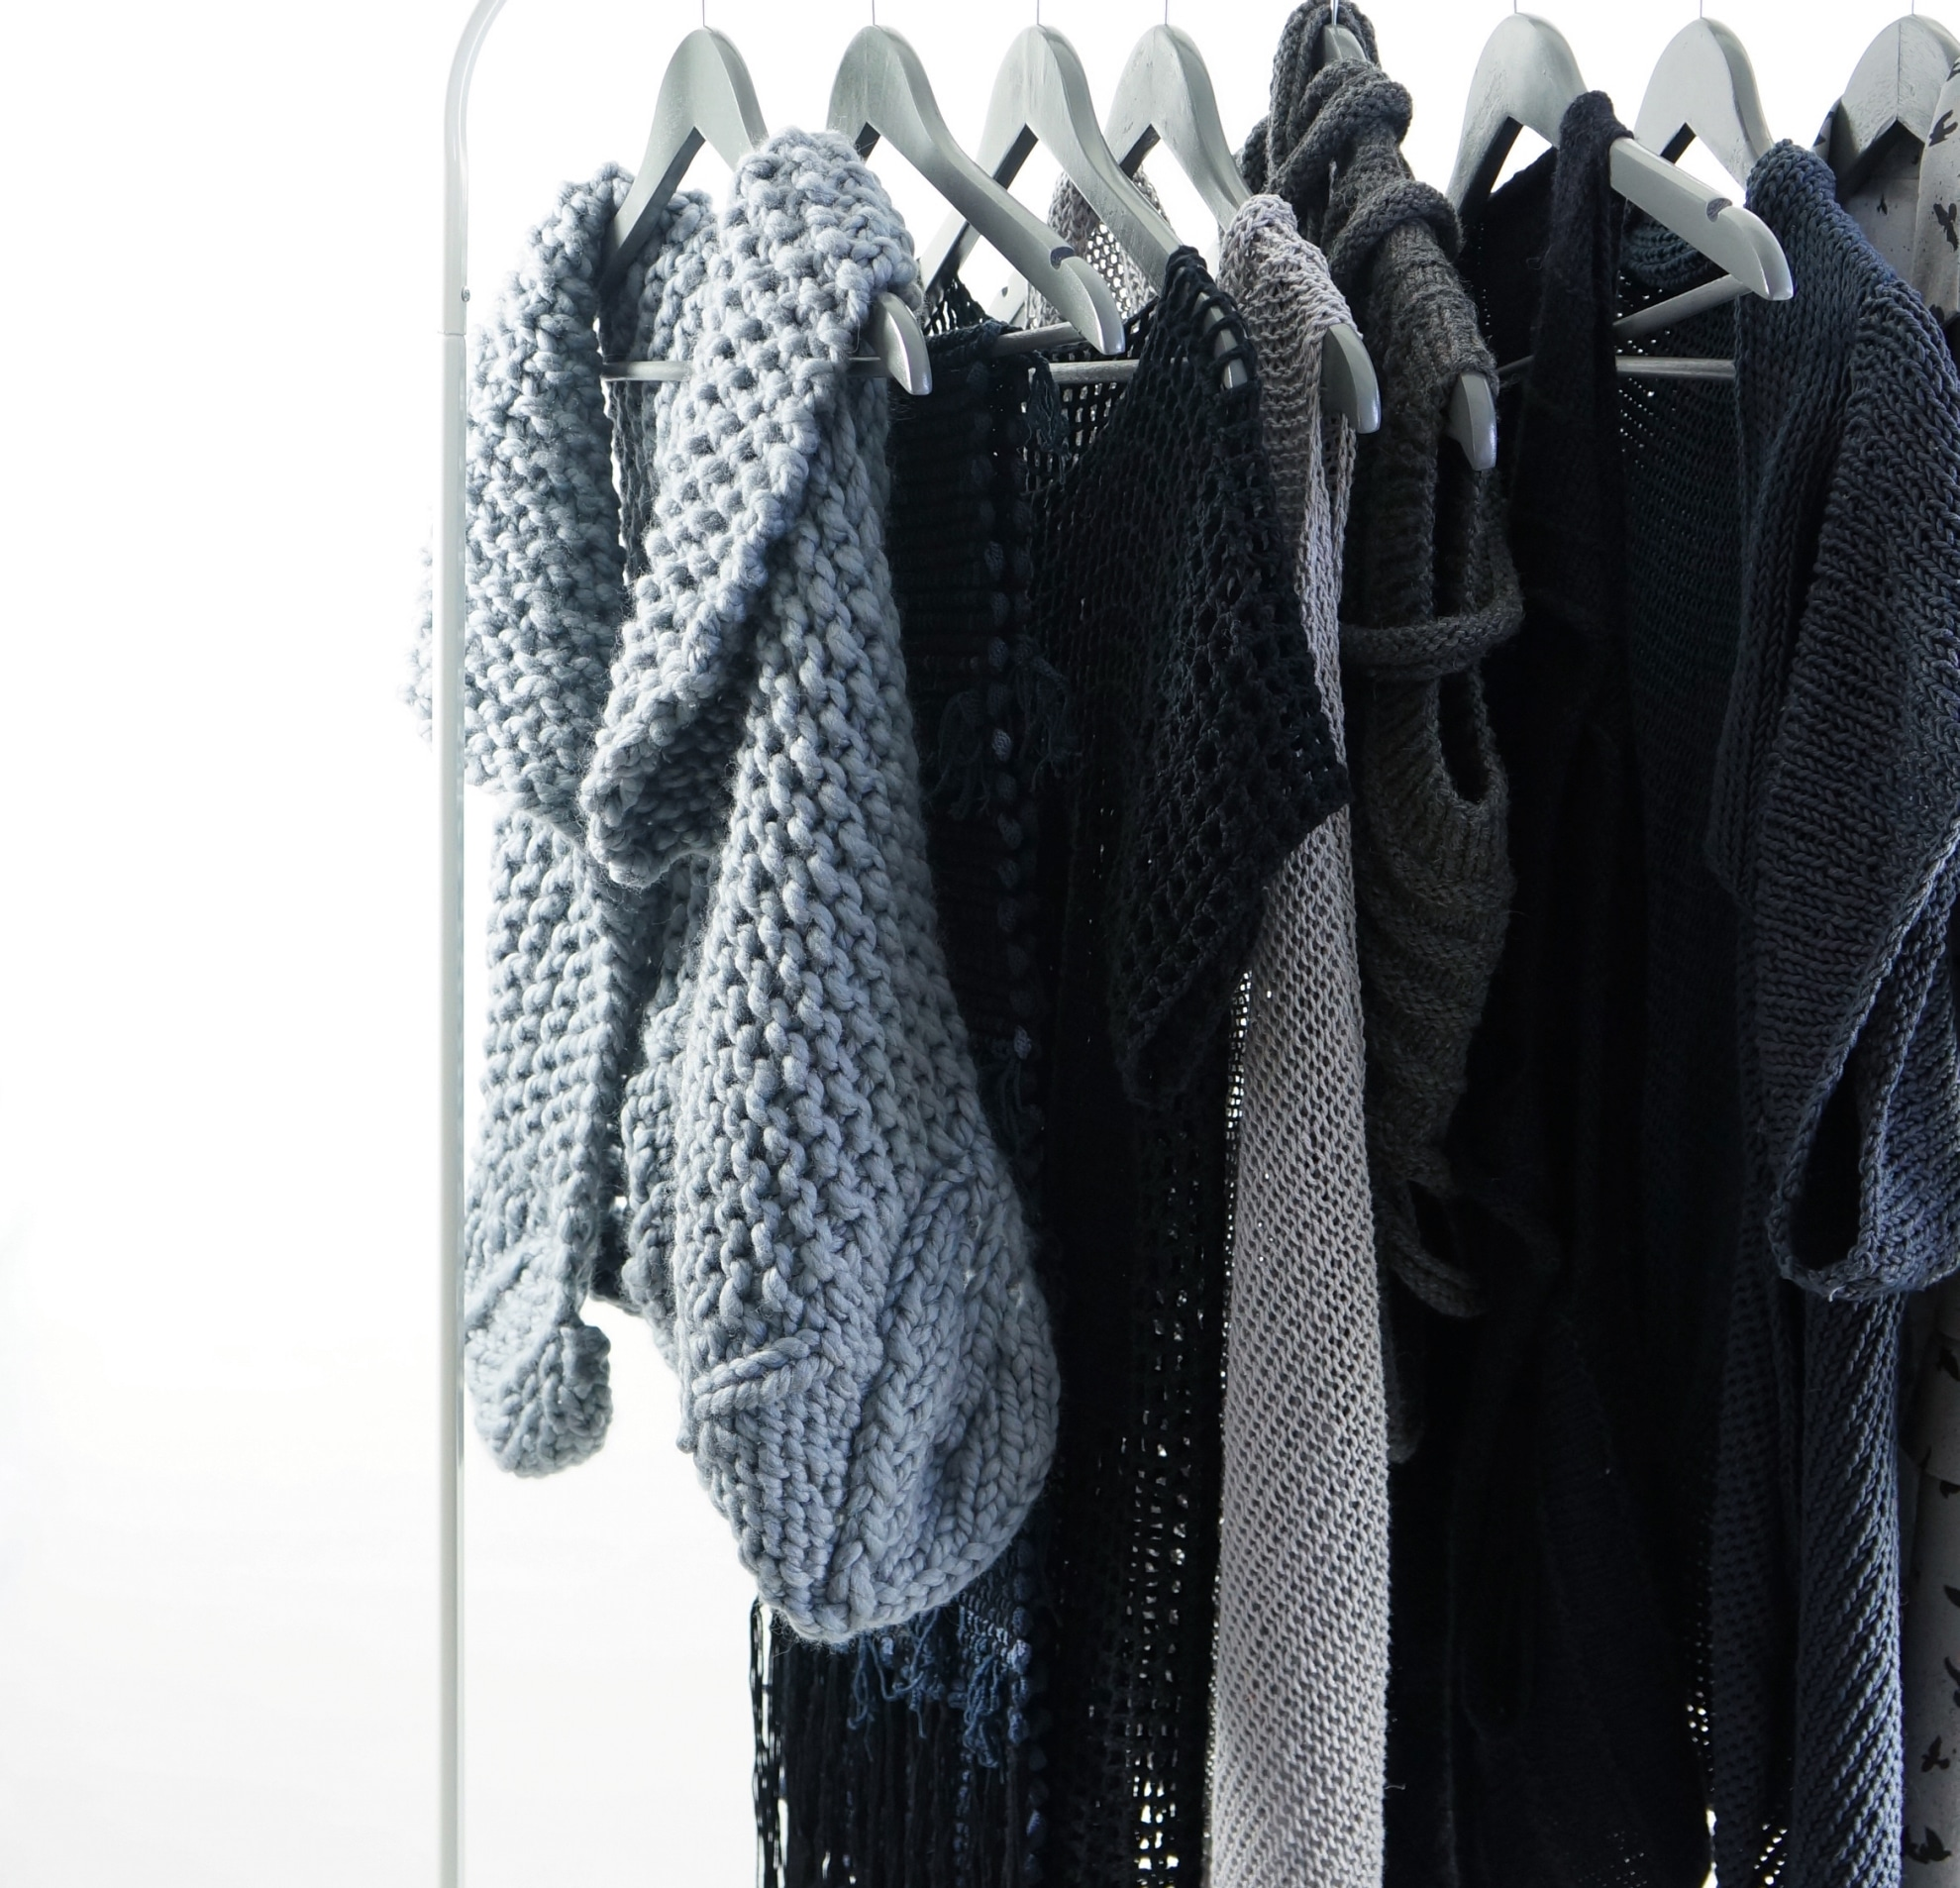 A rack of garments designed by Manual For The Invisible.